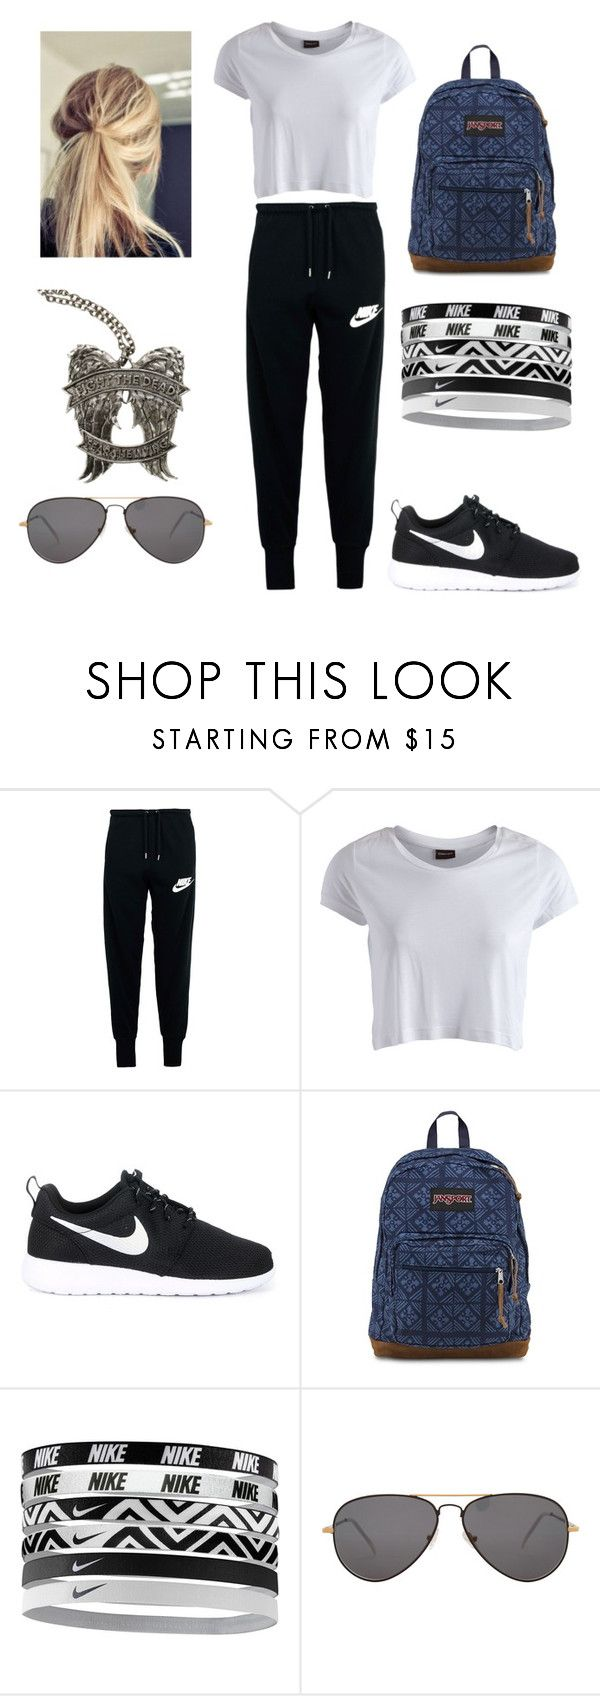 """""""Sin título #492"""" by mechi-caligiuri ❤ liked on Polyvore featuring NIKE, Pieces, JanSport and Sheriff&Cherry"""